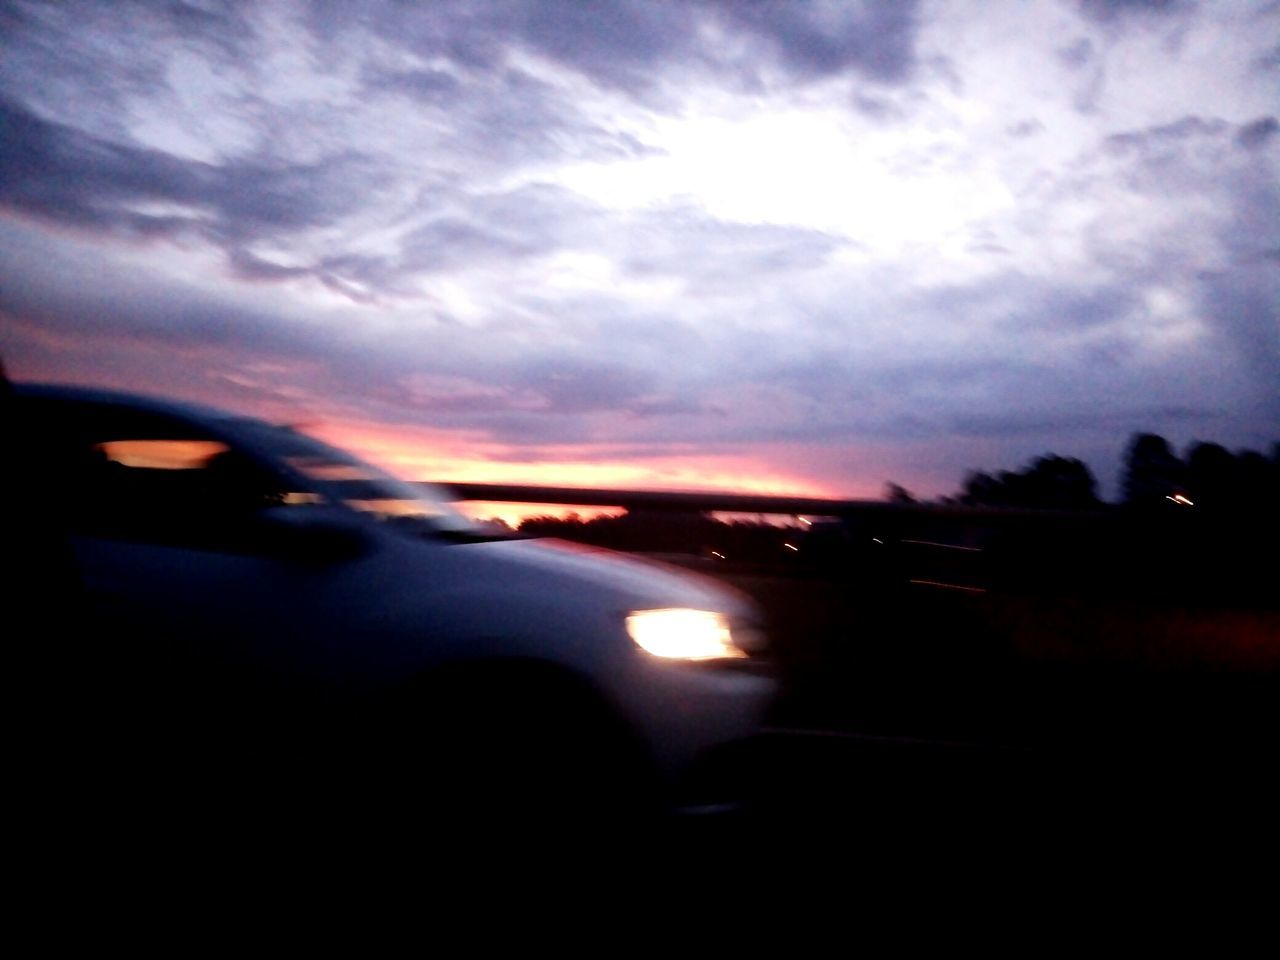 car, transportation, land vehicle, sunset, sky, mode of transport, road, silhouette, cloud - sky, nature, no people, scenics, outdoors, beauty in nature, day